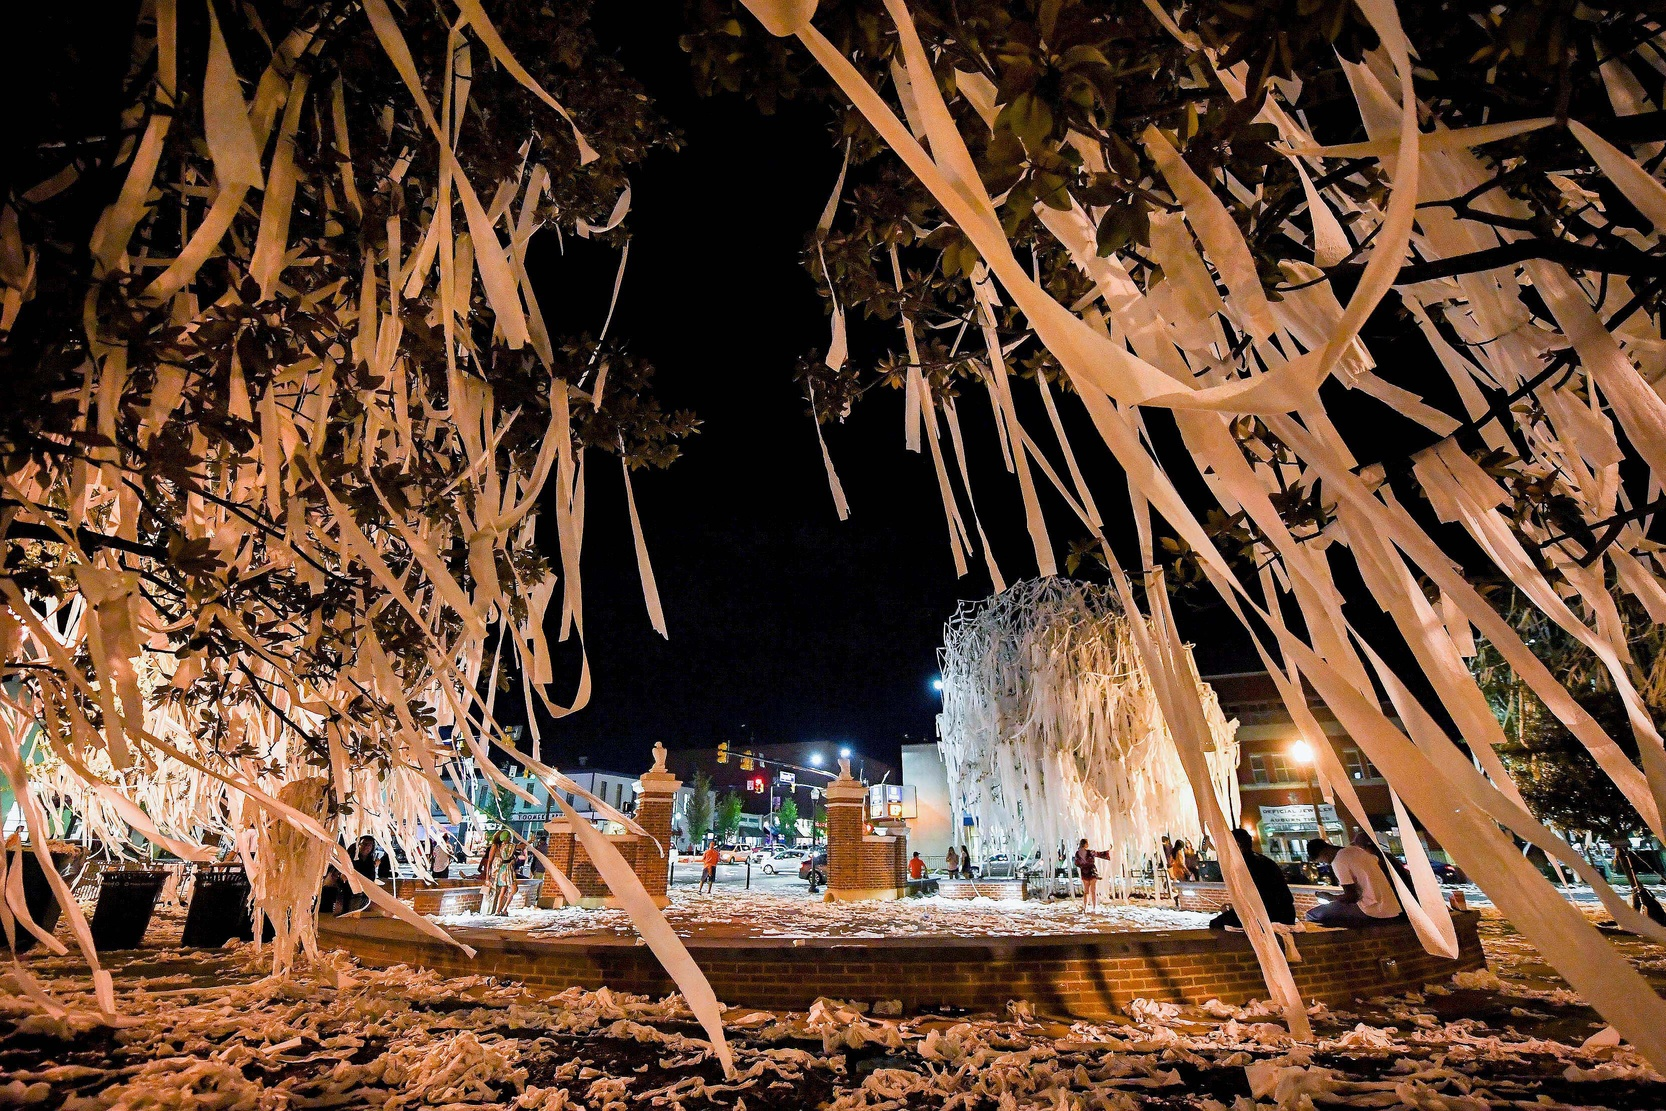 Report Toomer S Corner Arsonist Pleads Guilty To All Charges